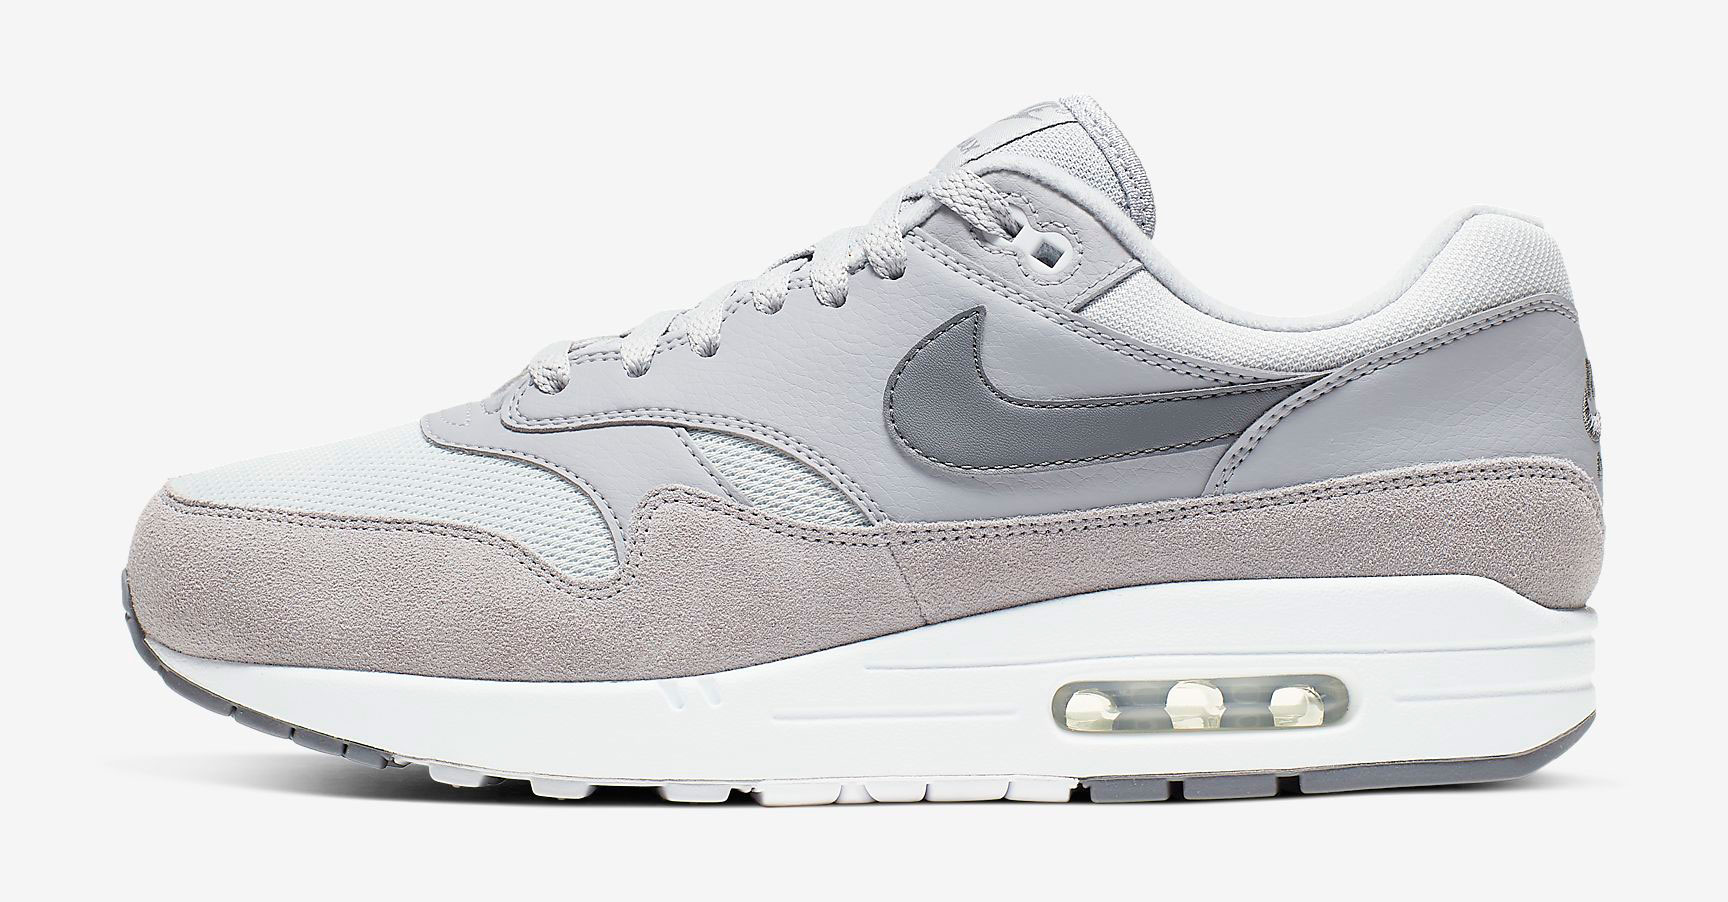 nike-air-max-1-pure-platinum-wolf-grey-release-date-where-to-buy